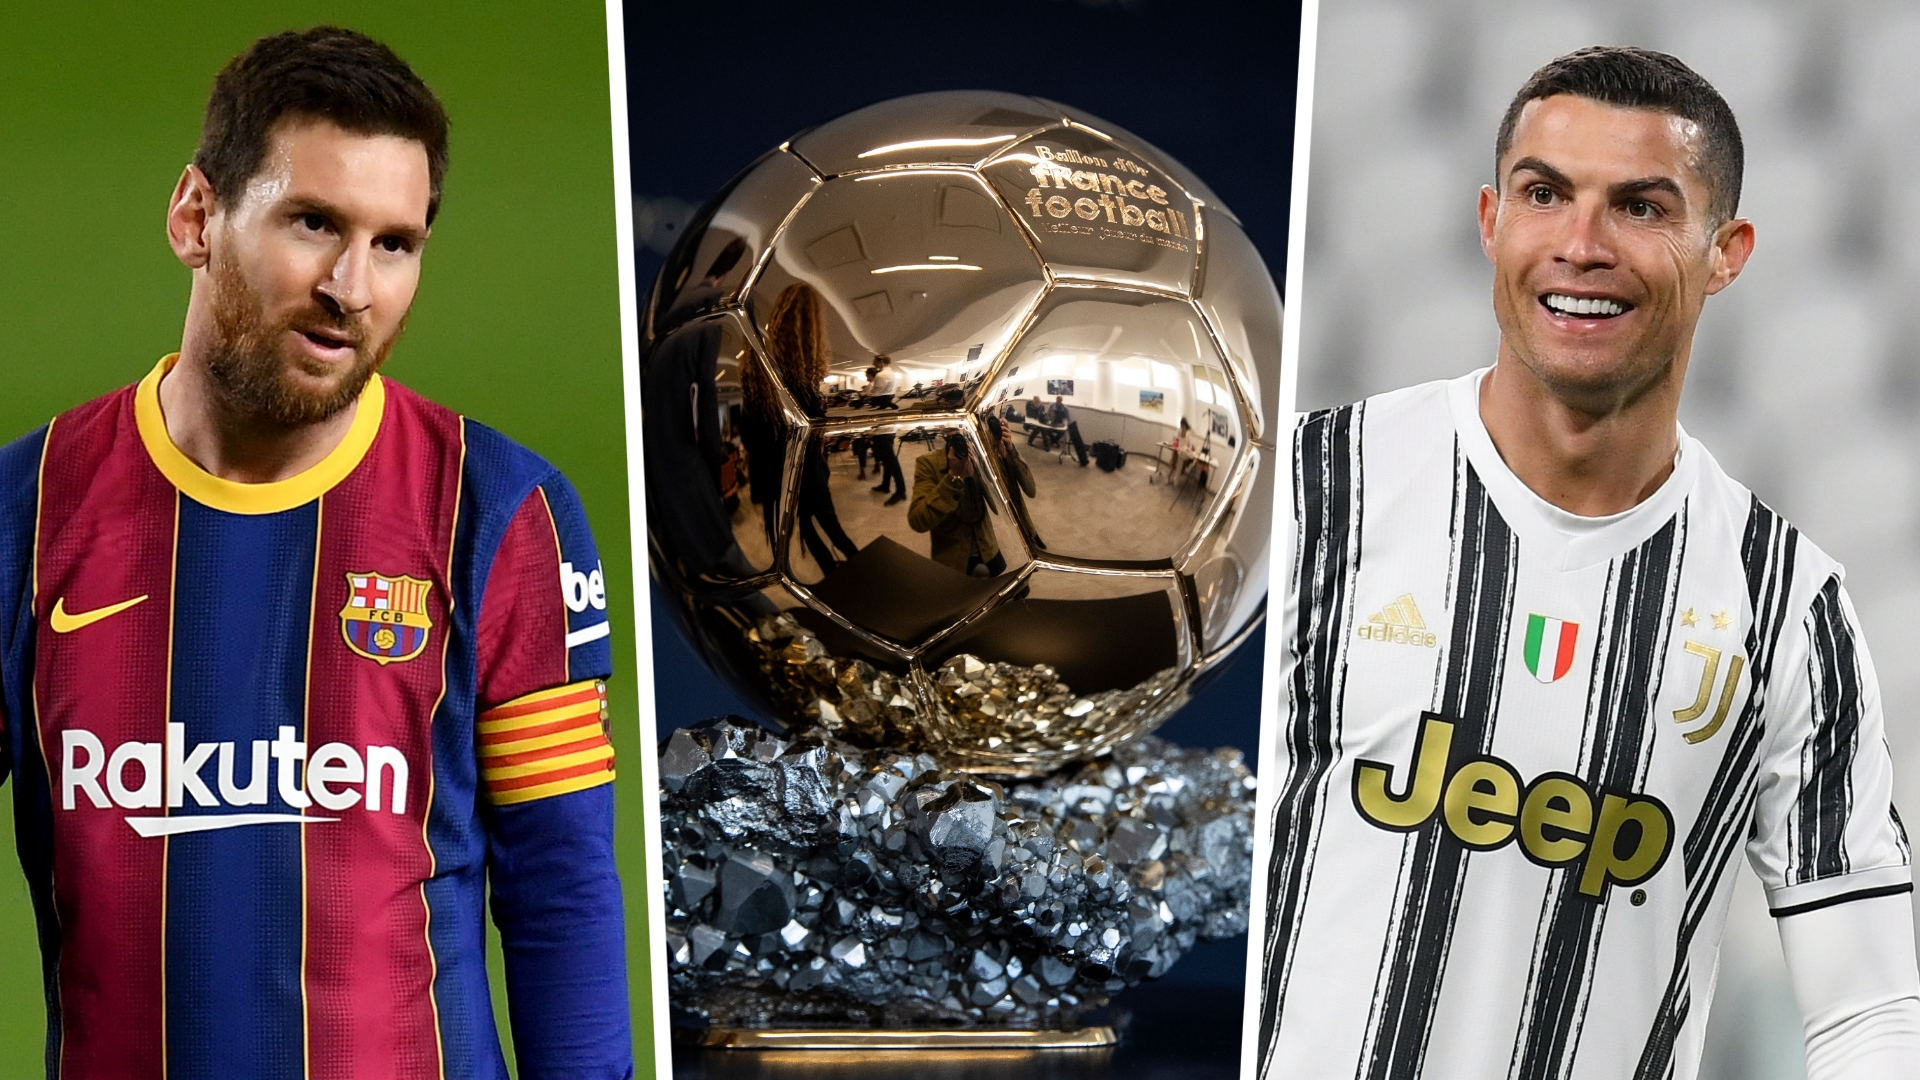 'Messi, Ronaldo lead the way' - Top 10 players with most numbers of Ballon d'Or awards